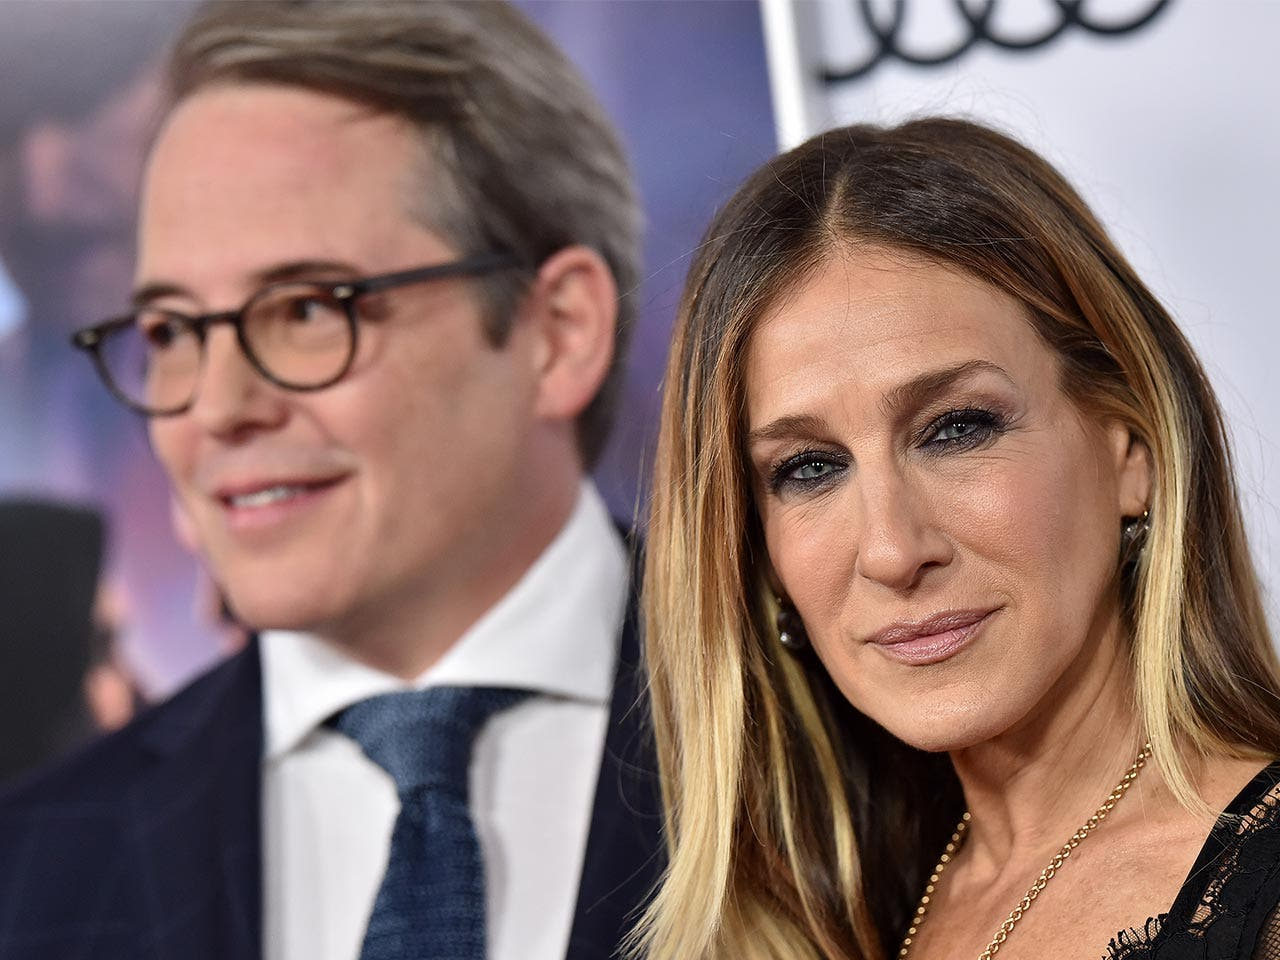 Sarah Jessica Parker and Matthew Broderick | Axelle/Bauer-Griffin/Getty Images